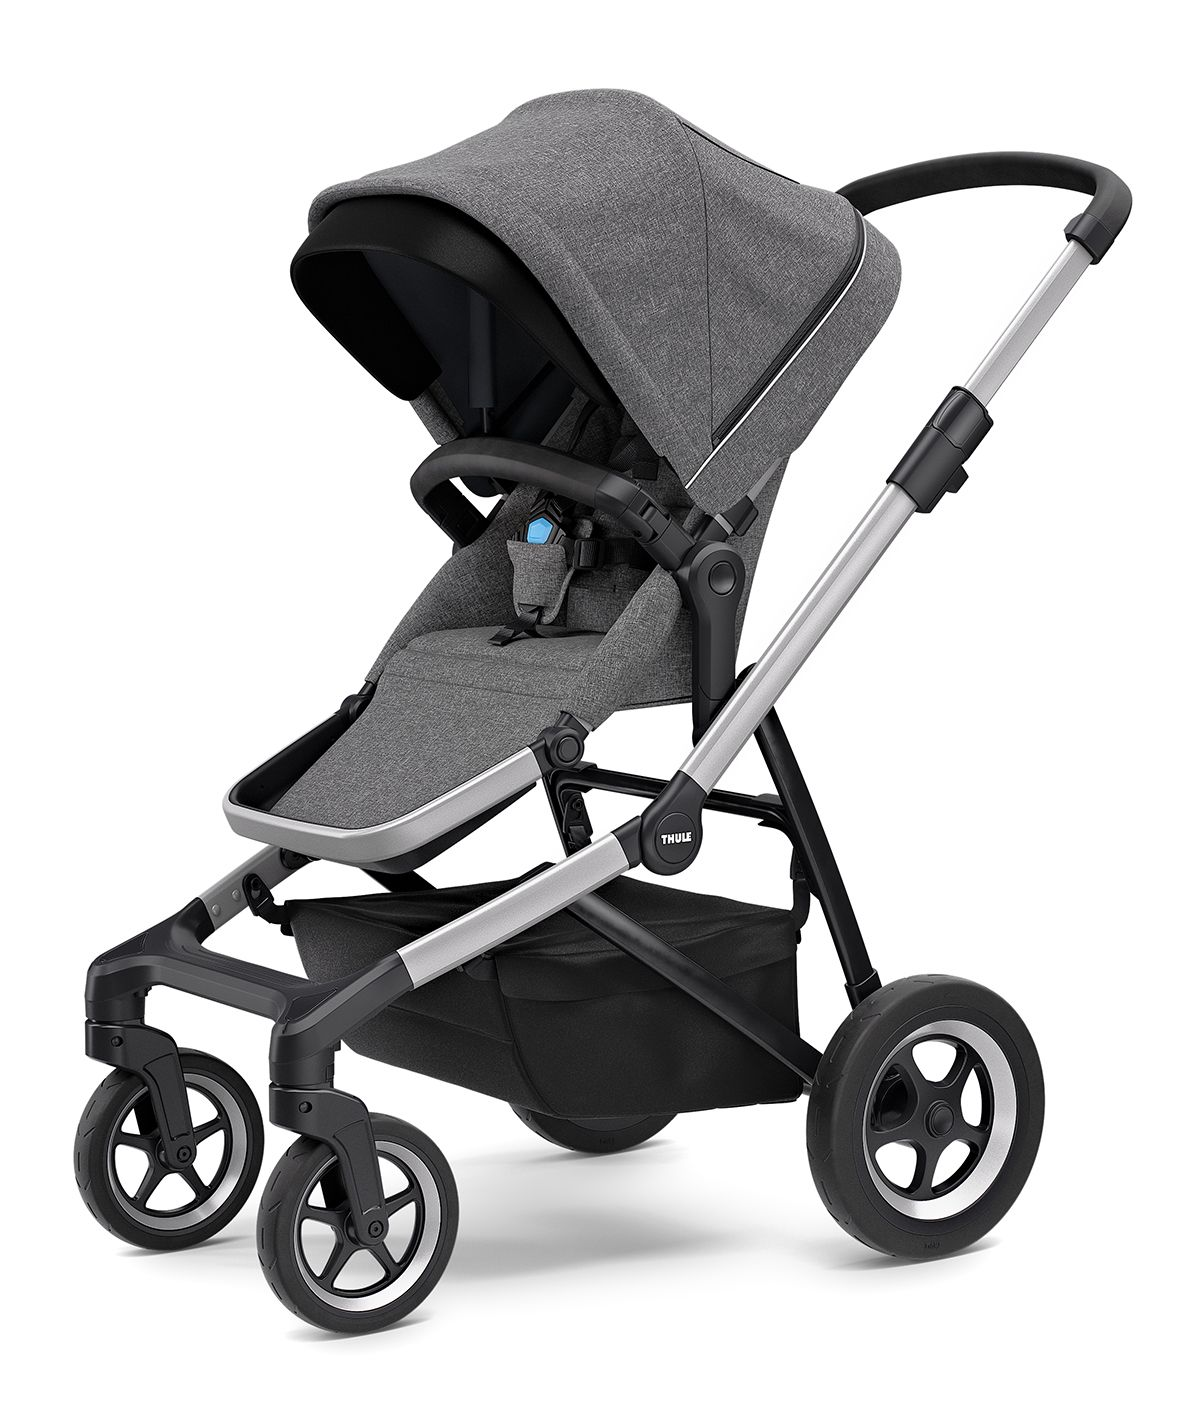 The Coolest Products from the 2018 JPMA Baby Show